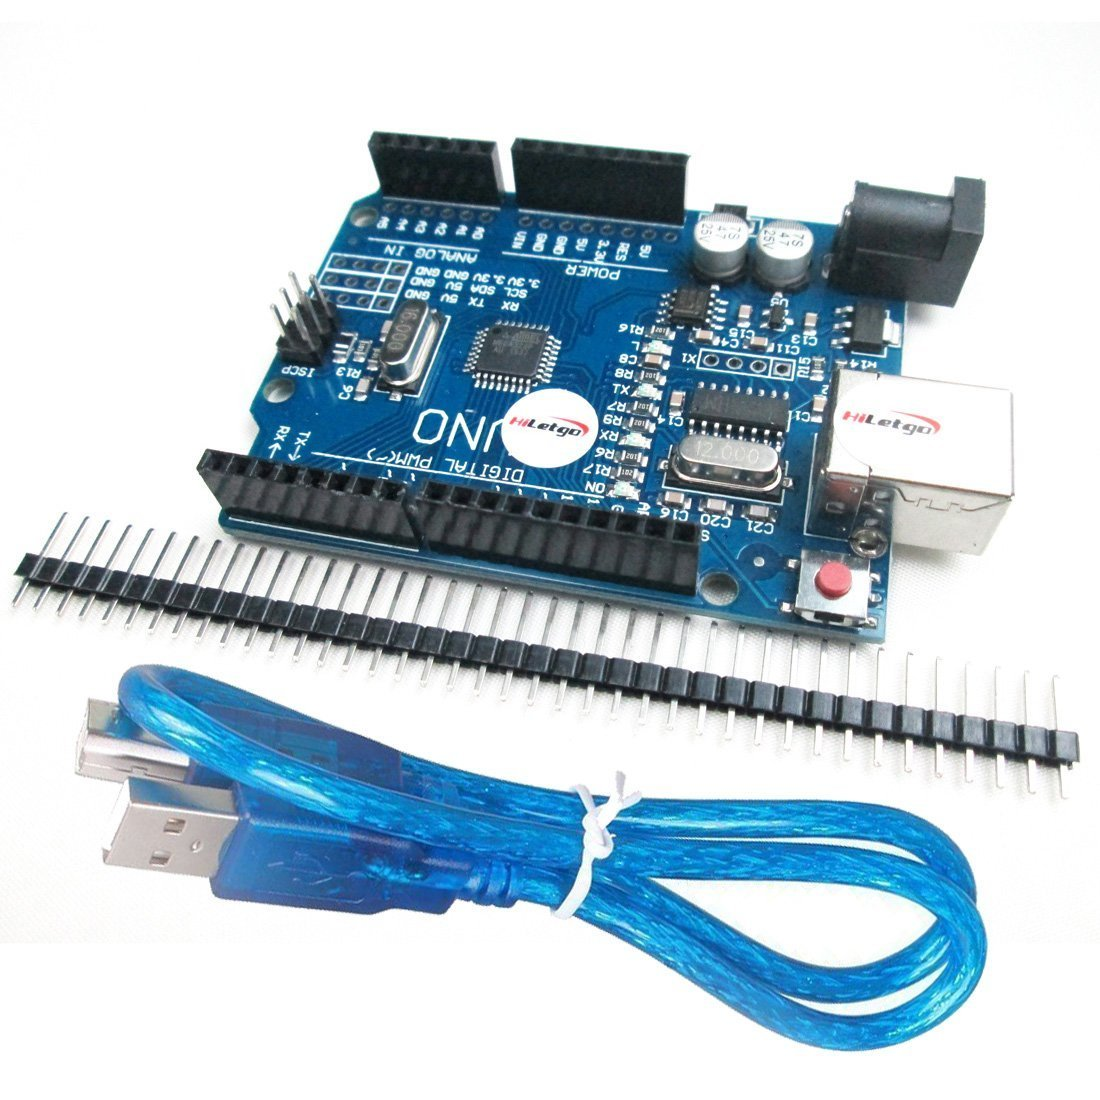 Best Rated In Robot Parts Accessories Helpful Customer Reviews Circuit Board Ch340 Development Compatible Arduino Uno R3 Ide Develope Kit Microcontroller With Usb Cable Straight Pin Header 254mm Pitch